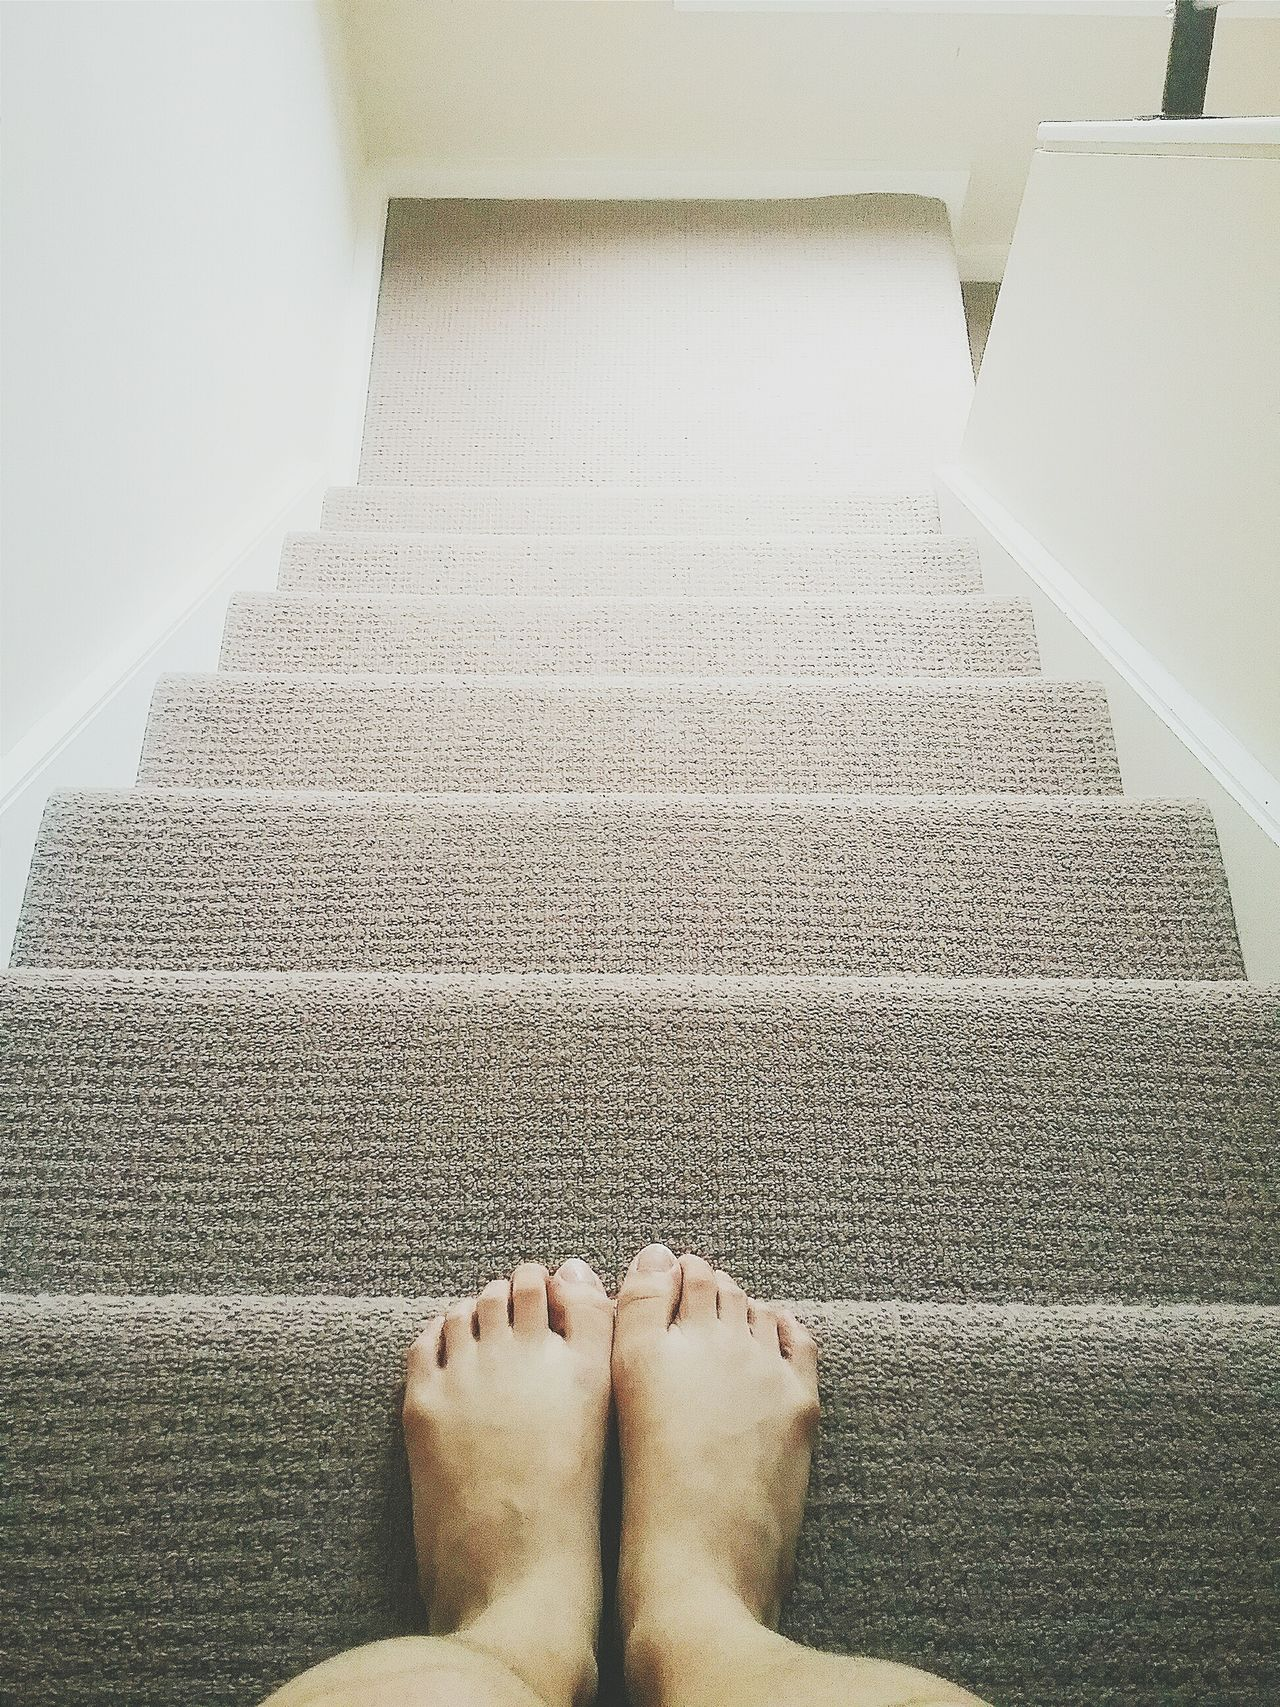 Just stairs... basically. Taking Photos Photography Chillin' HomeBored Photo Photoshoot Instagramable